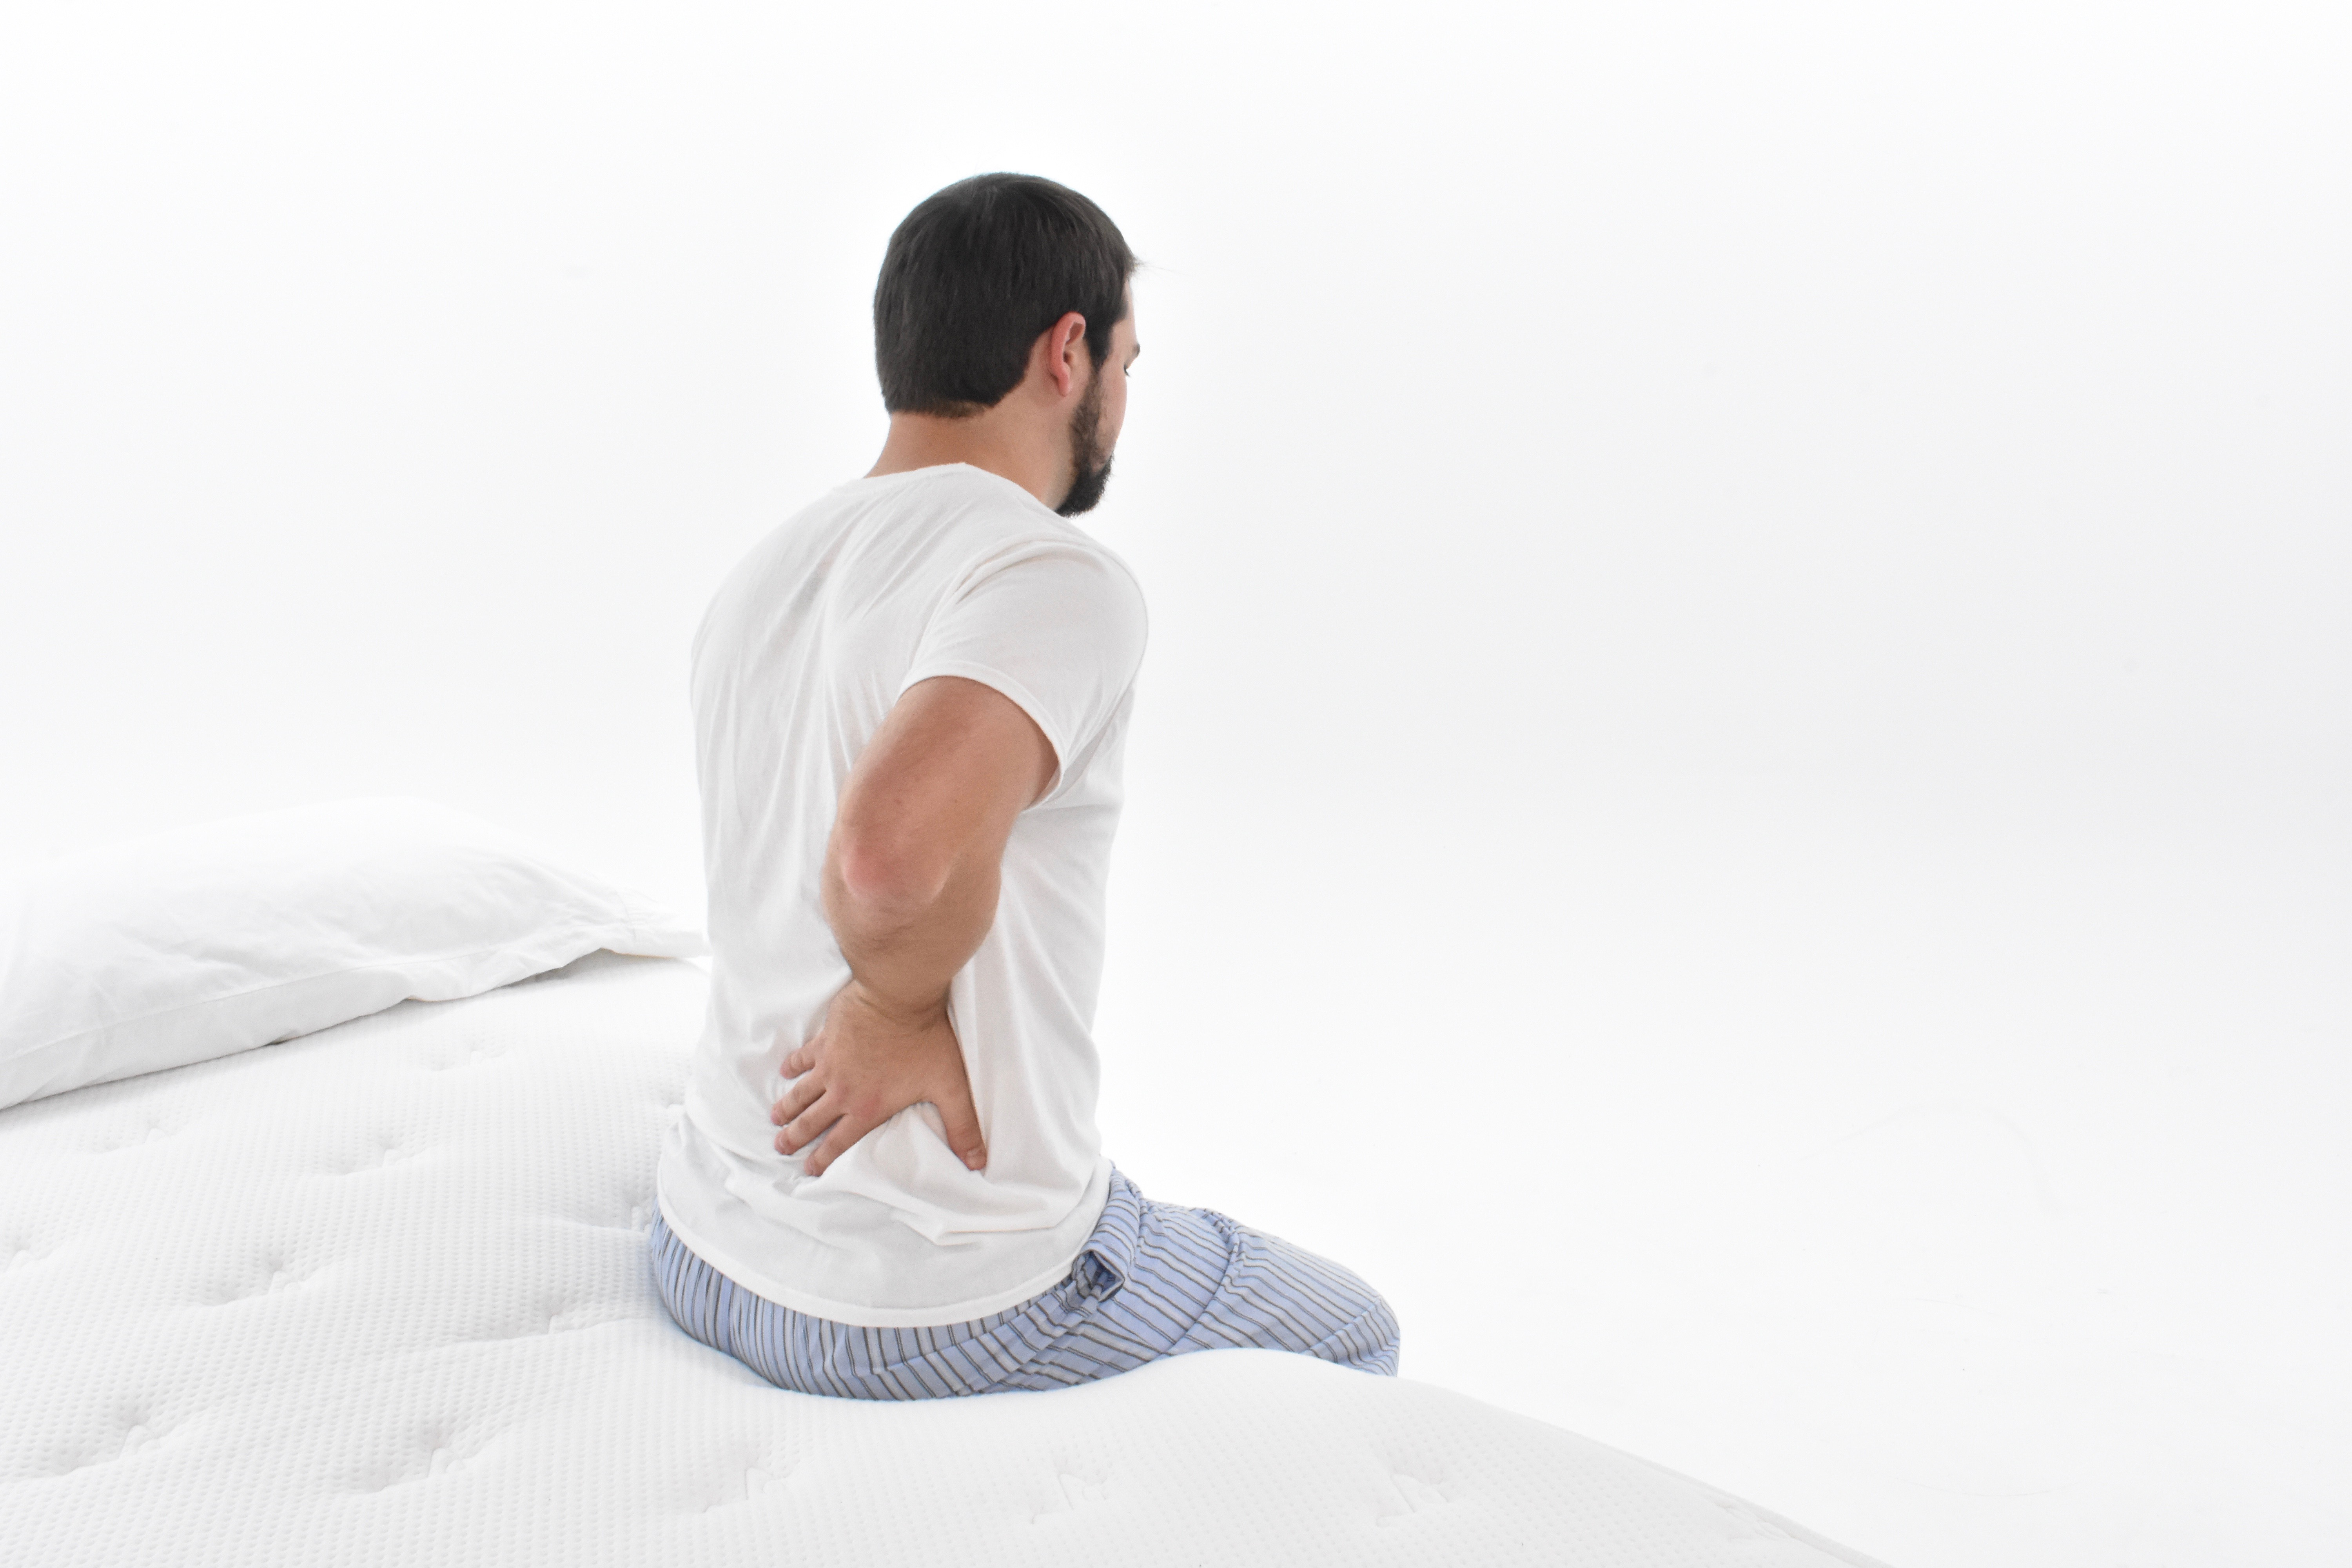 hot sale online caf9b 31a5a 5 Best Mattresses for Back Pain Relief (2019) | Mattress Advisor